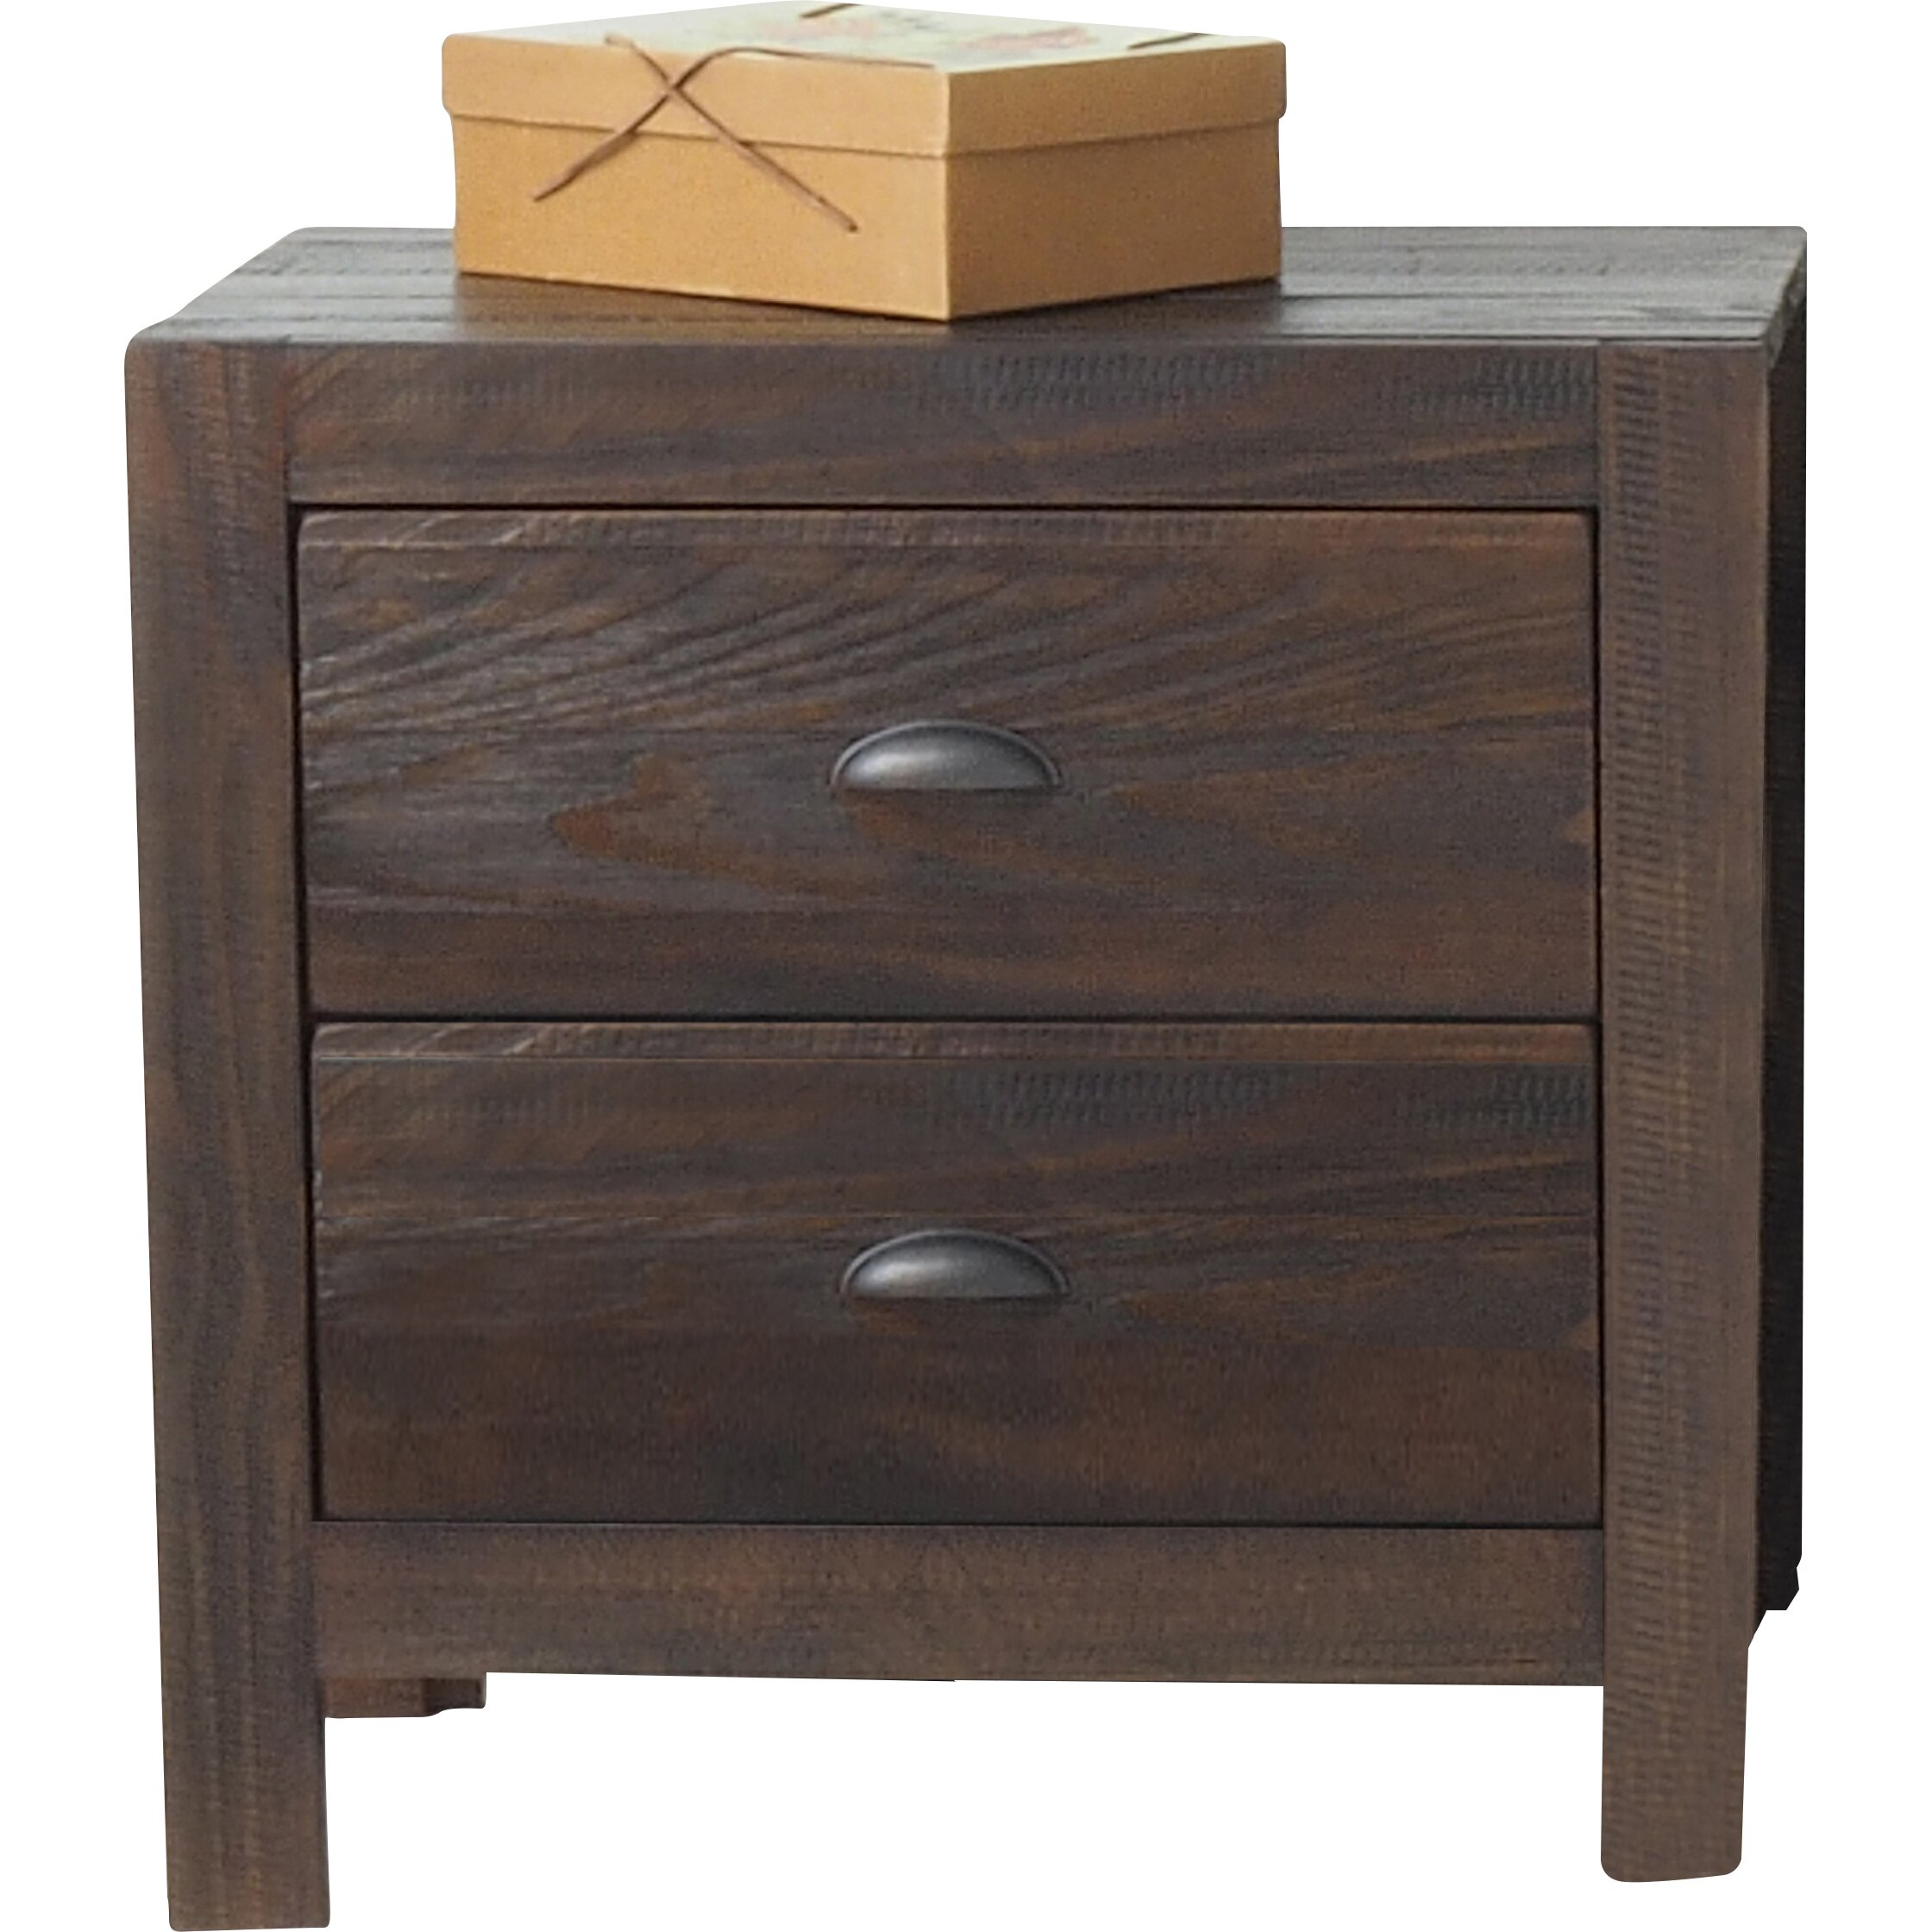 Grain Wood Furniture Montauk 2 Drawer Nightstand & Reviews Wayfair. Full resolution  image, nominally Width 2240 Height 2240 pixels, image with #9A6C31.